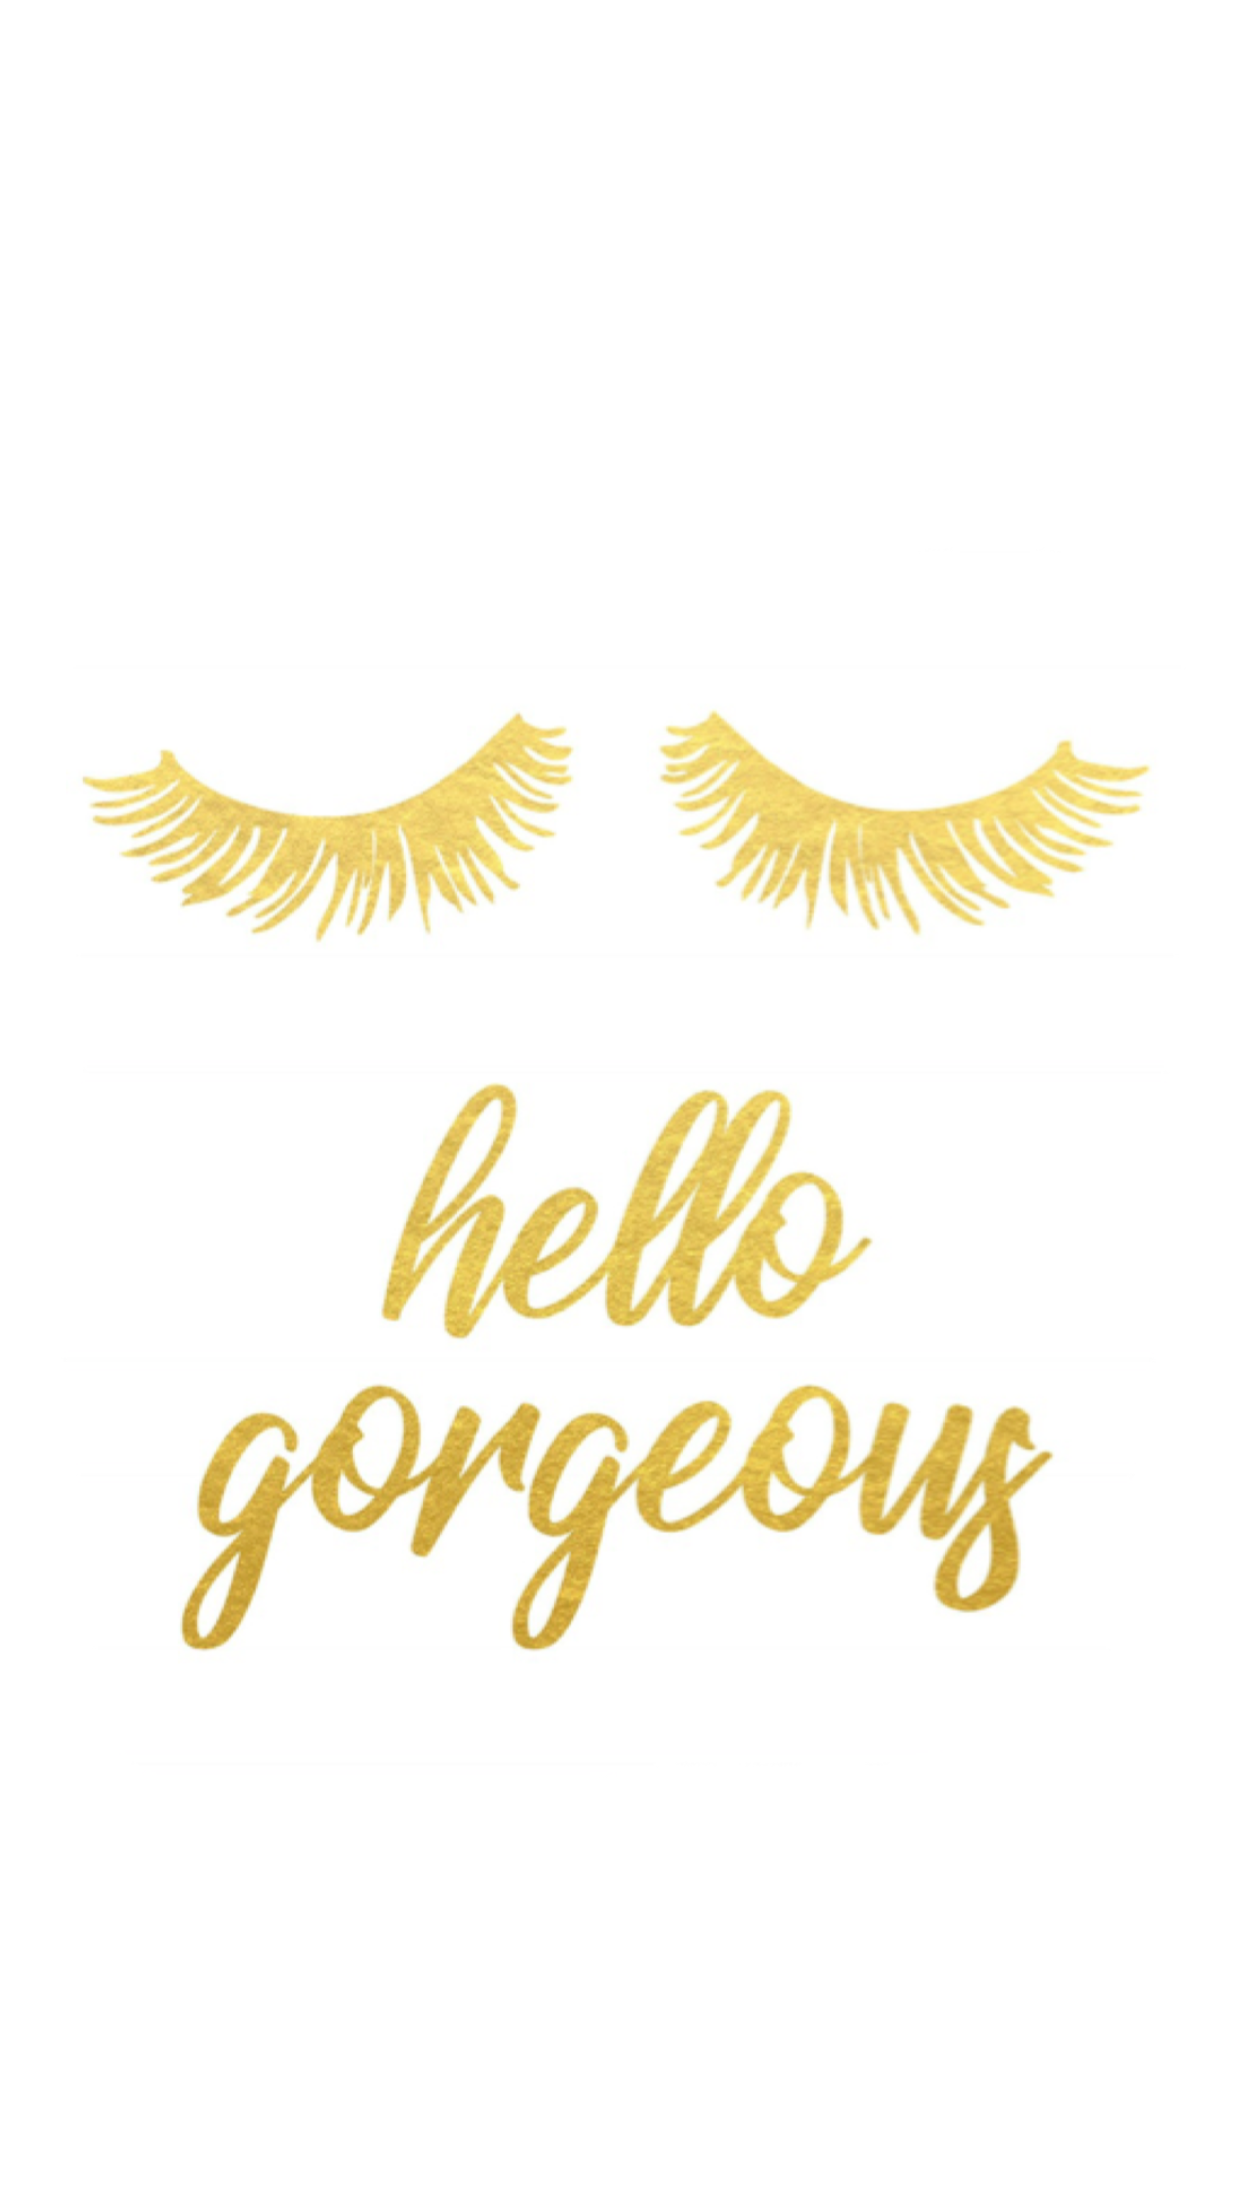 Girly Girl Pngs Backgrounds - Girly Girl ~ Gold | Laptop wallpaper in 2019 | Cute wallpapers ...